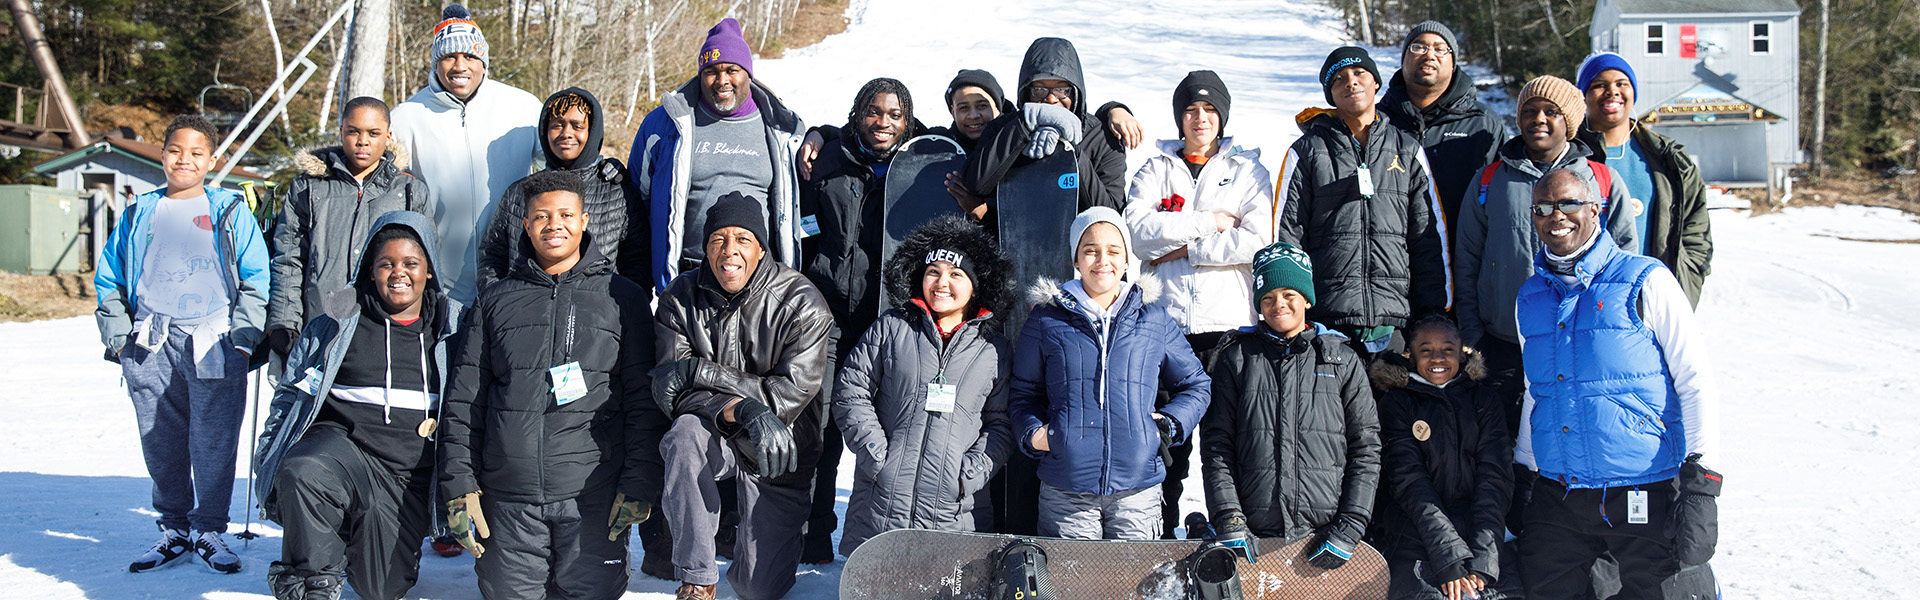 Image of single visit skiers and snowboarders